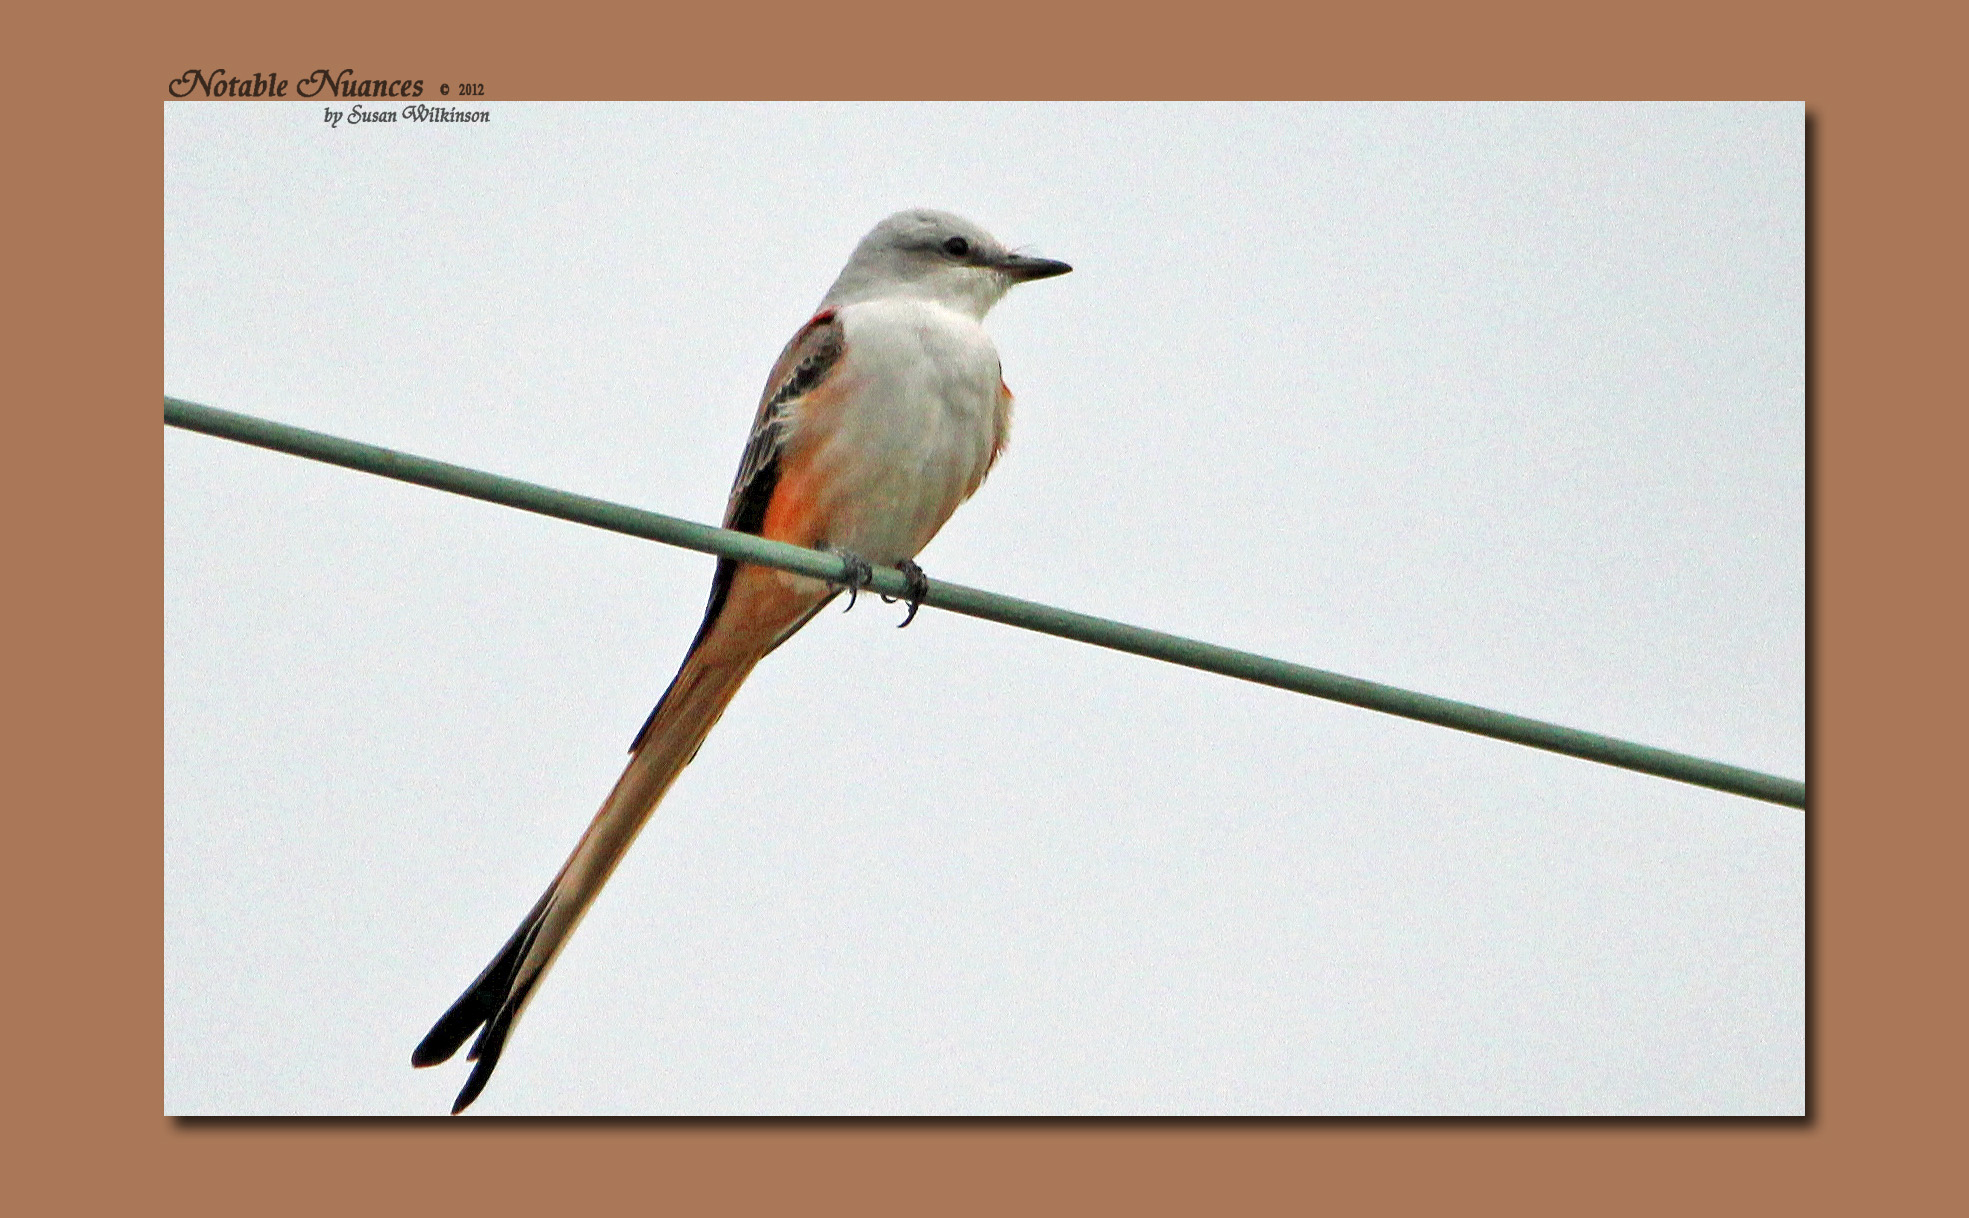 ... January 20, 2013 at 1969 × 1218 in Scissor-tailed Flycatcher